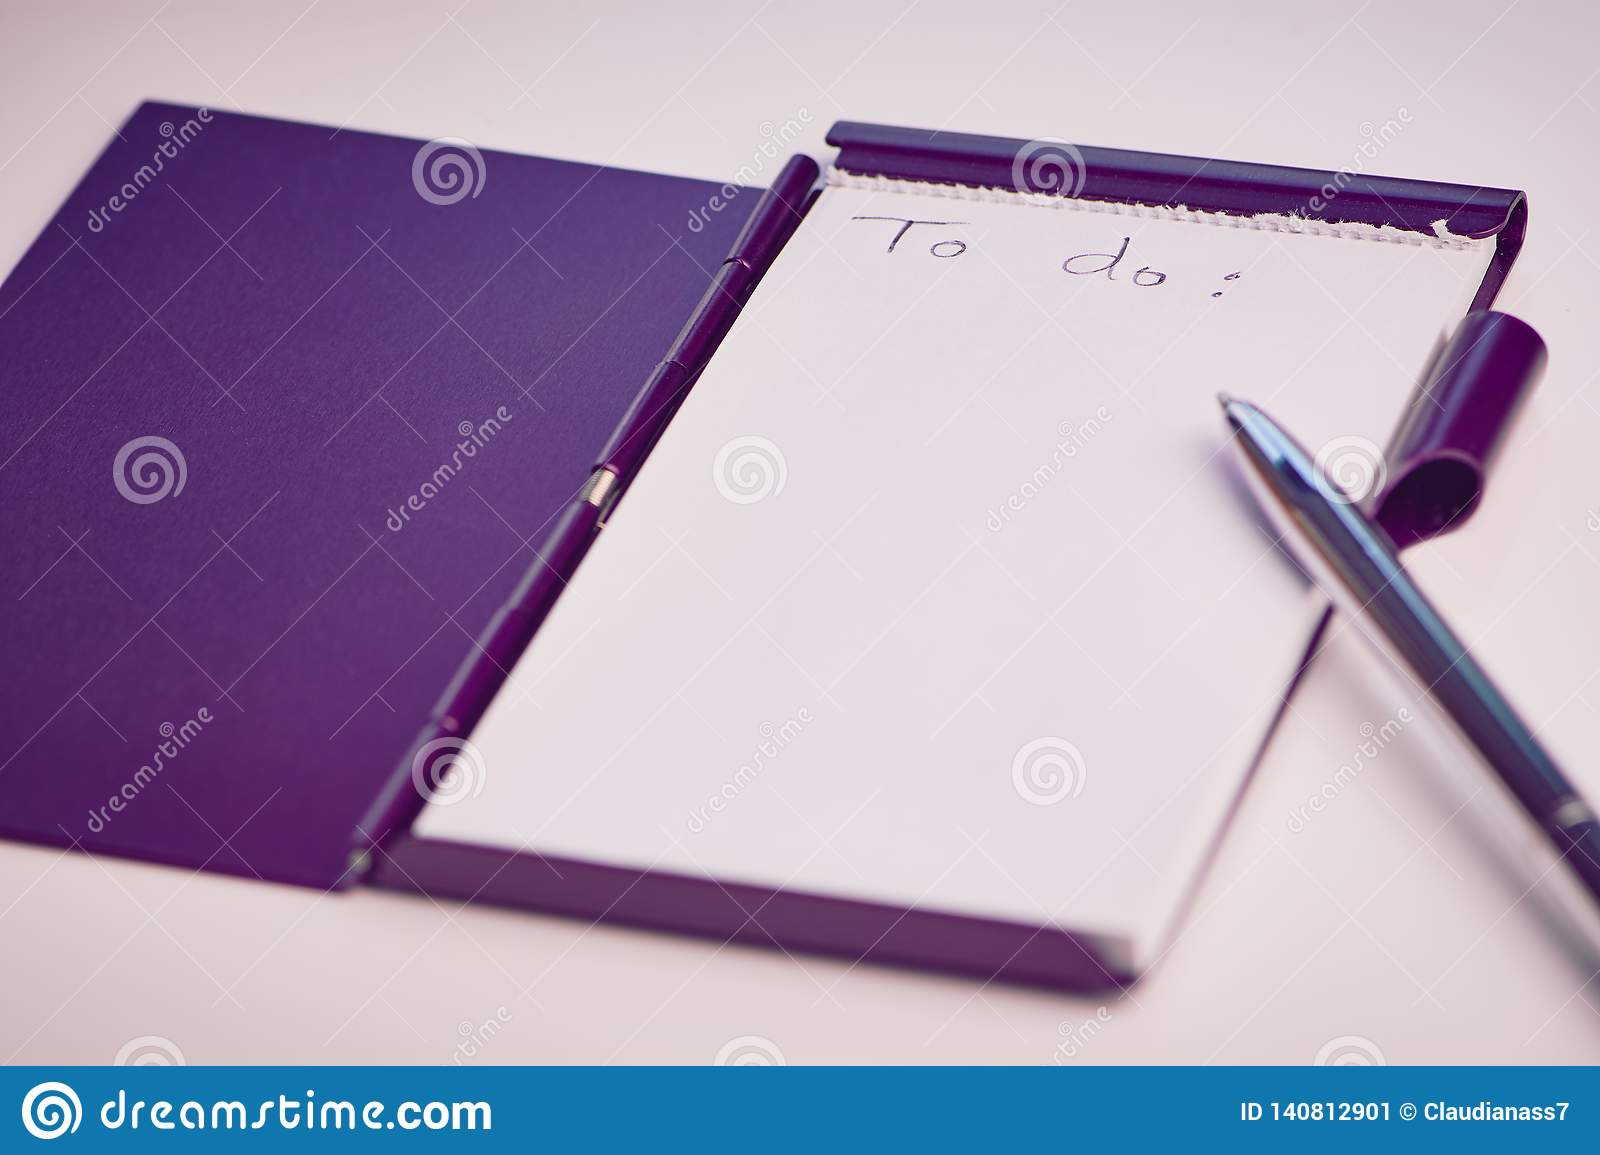 White Notepad With The English Words: To Do Stock Image - Image of